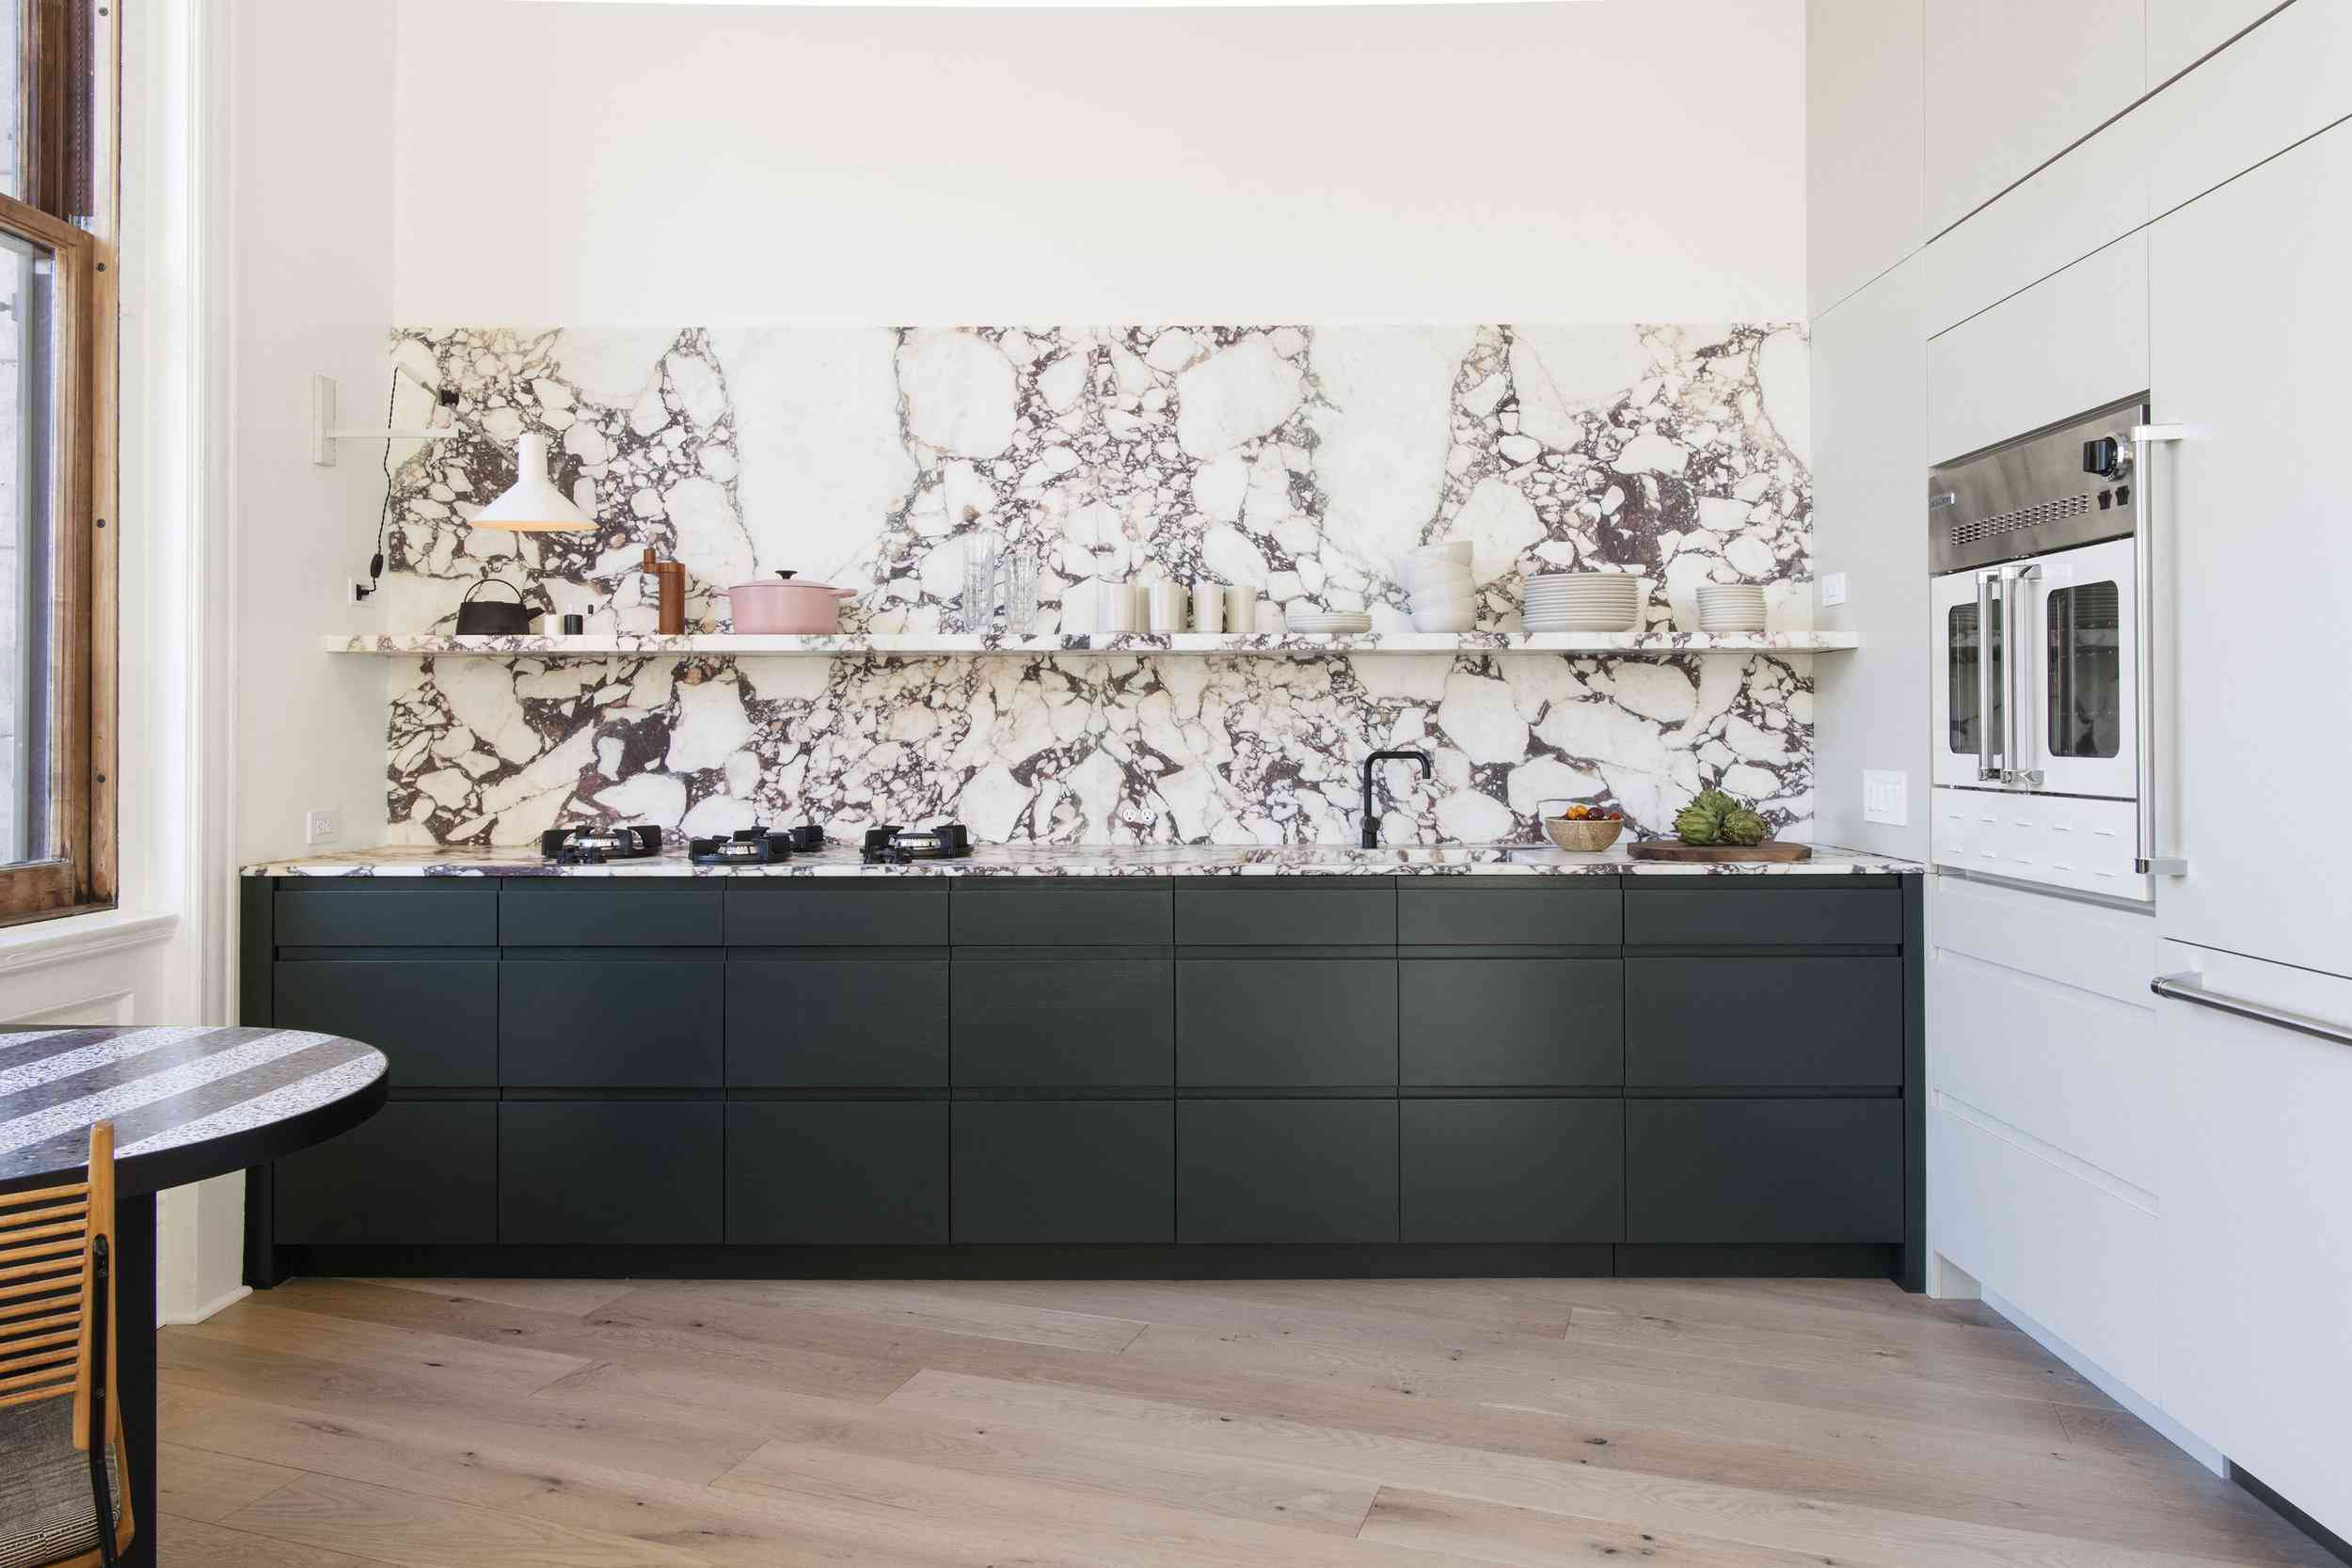 Minimalist kitchen with hunter green cabinetry, marble countertop and backsplash